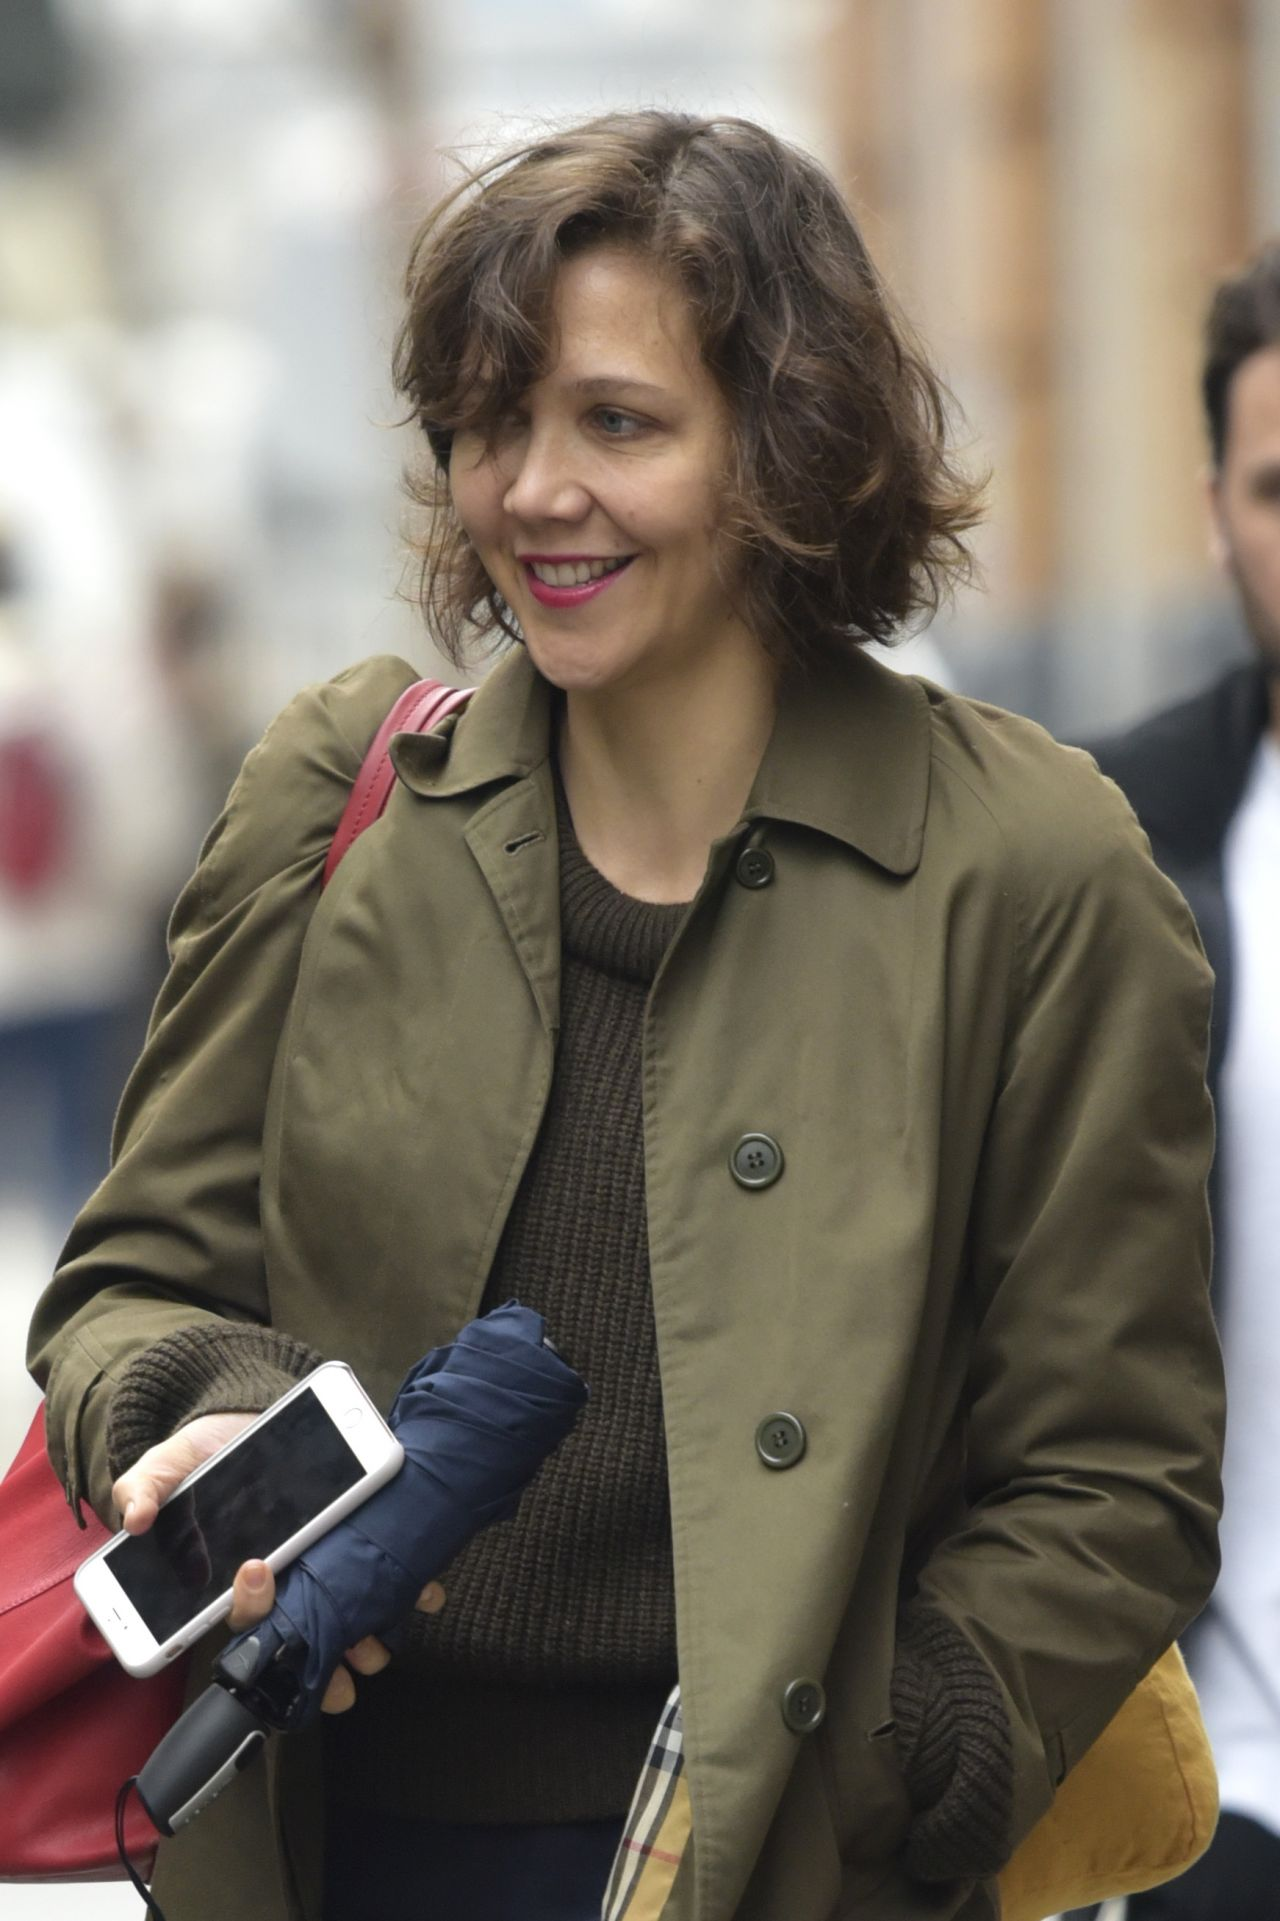 Maggie Gyllenhaal on the Set of 'Inside Amy Schumer' in ... Maggie Gyllenhaal